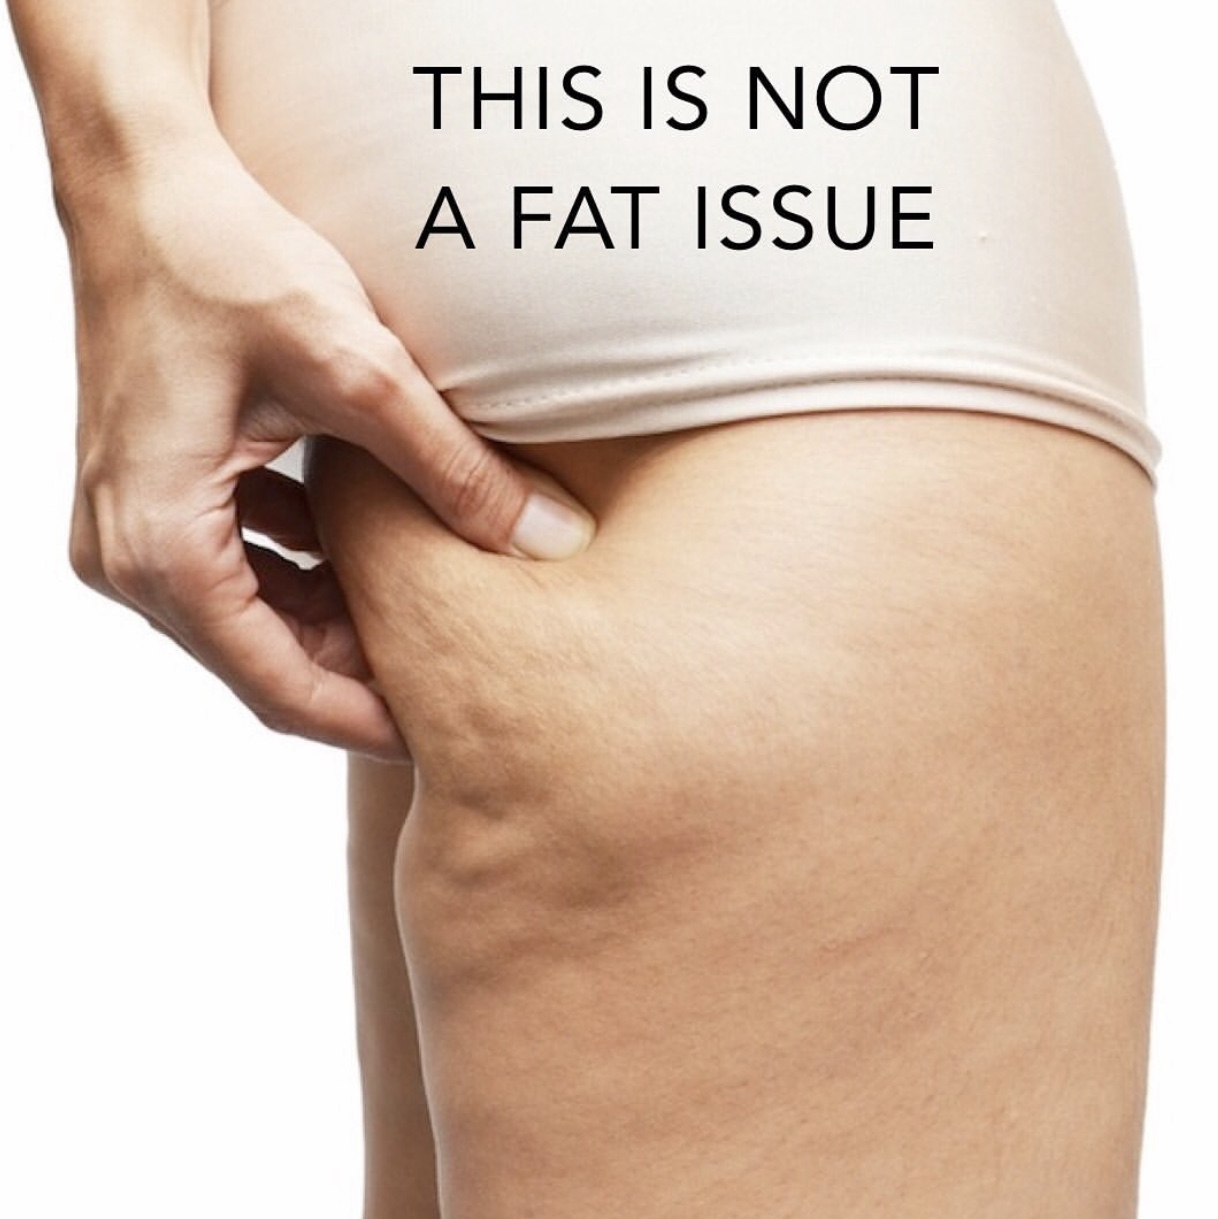 Cellulite and Fluid Retention